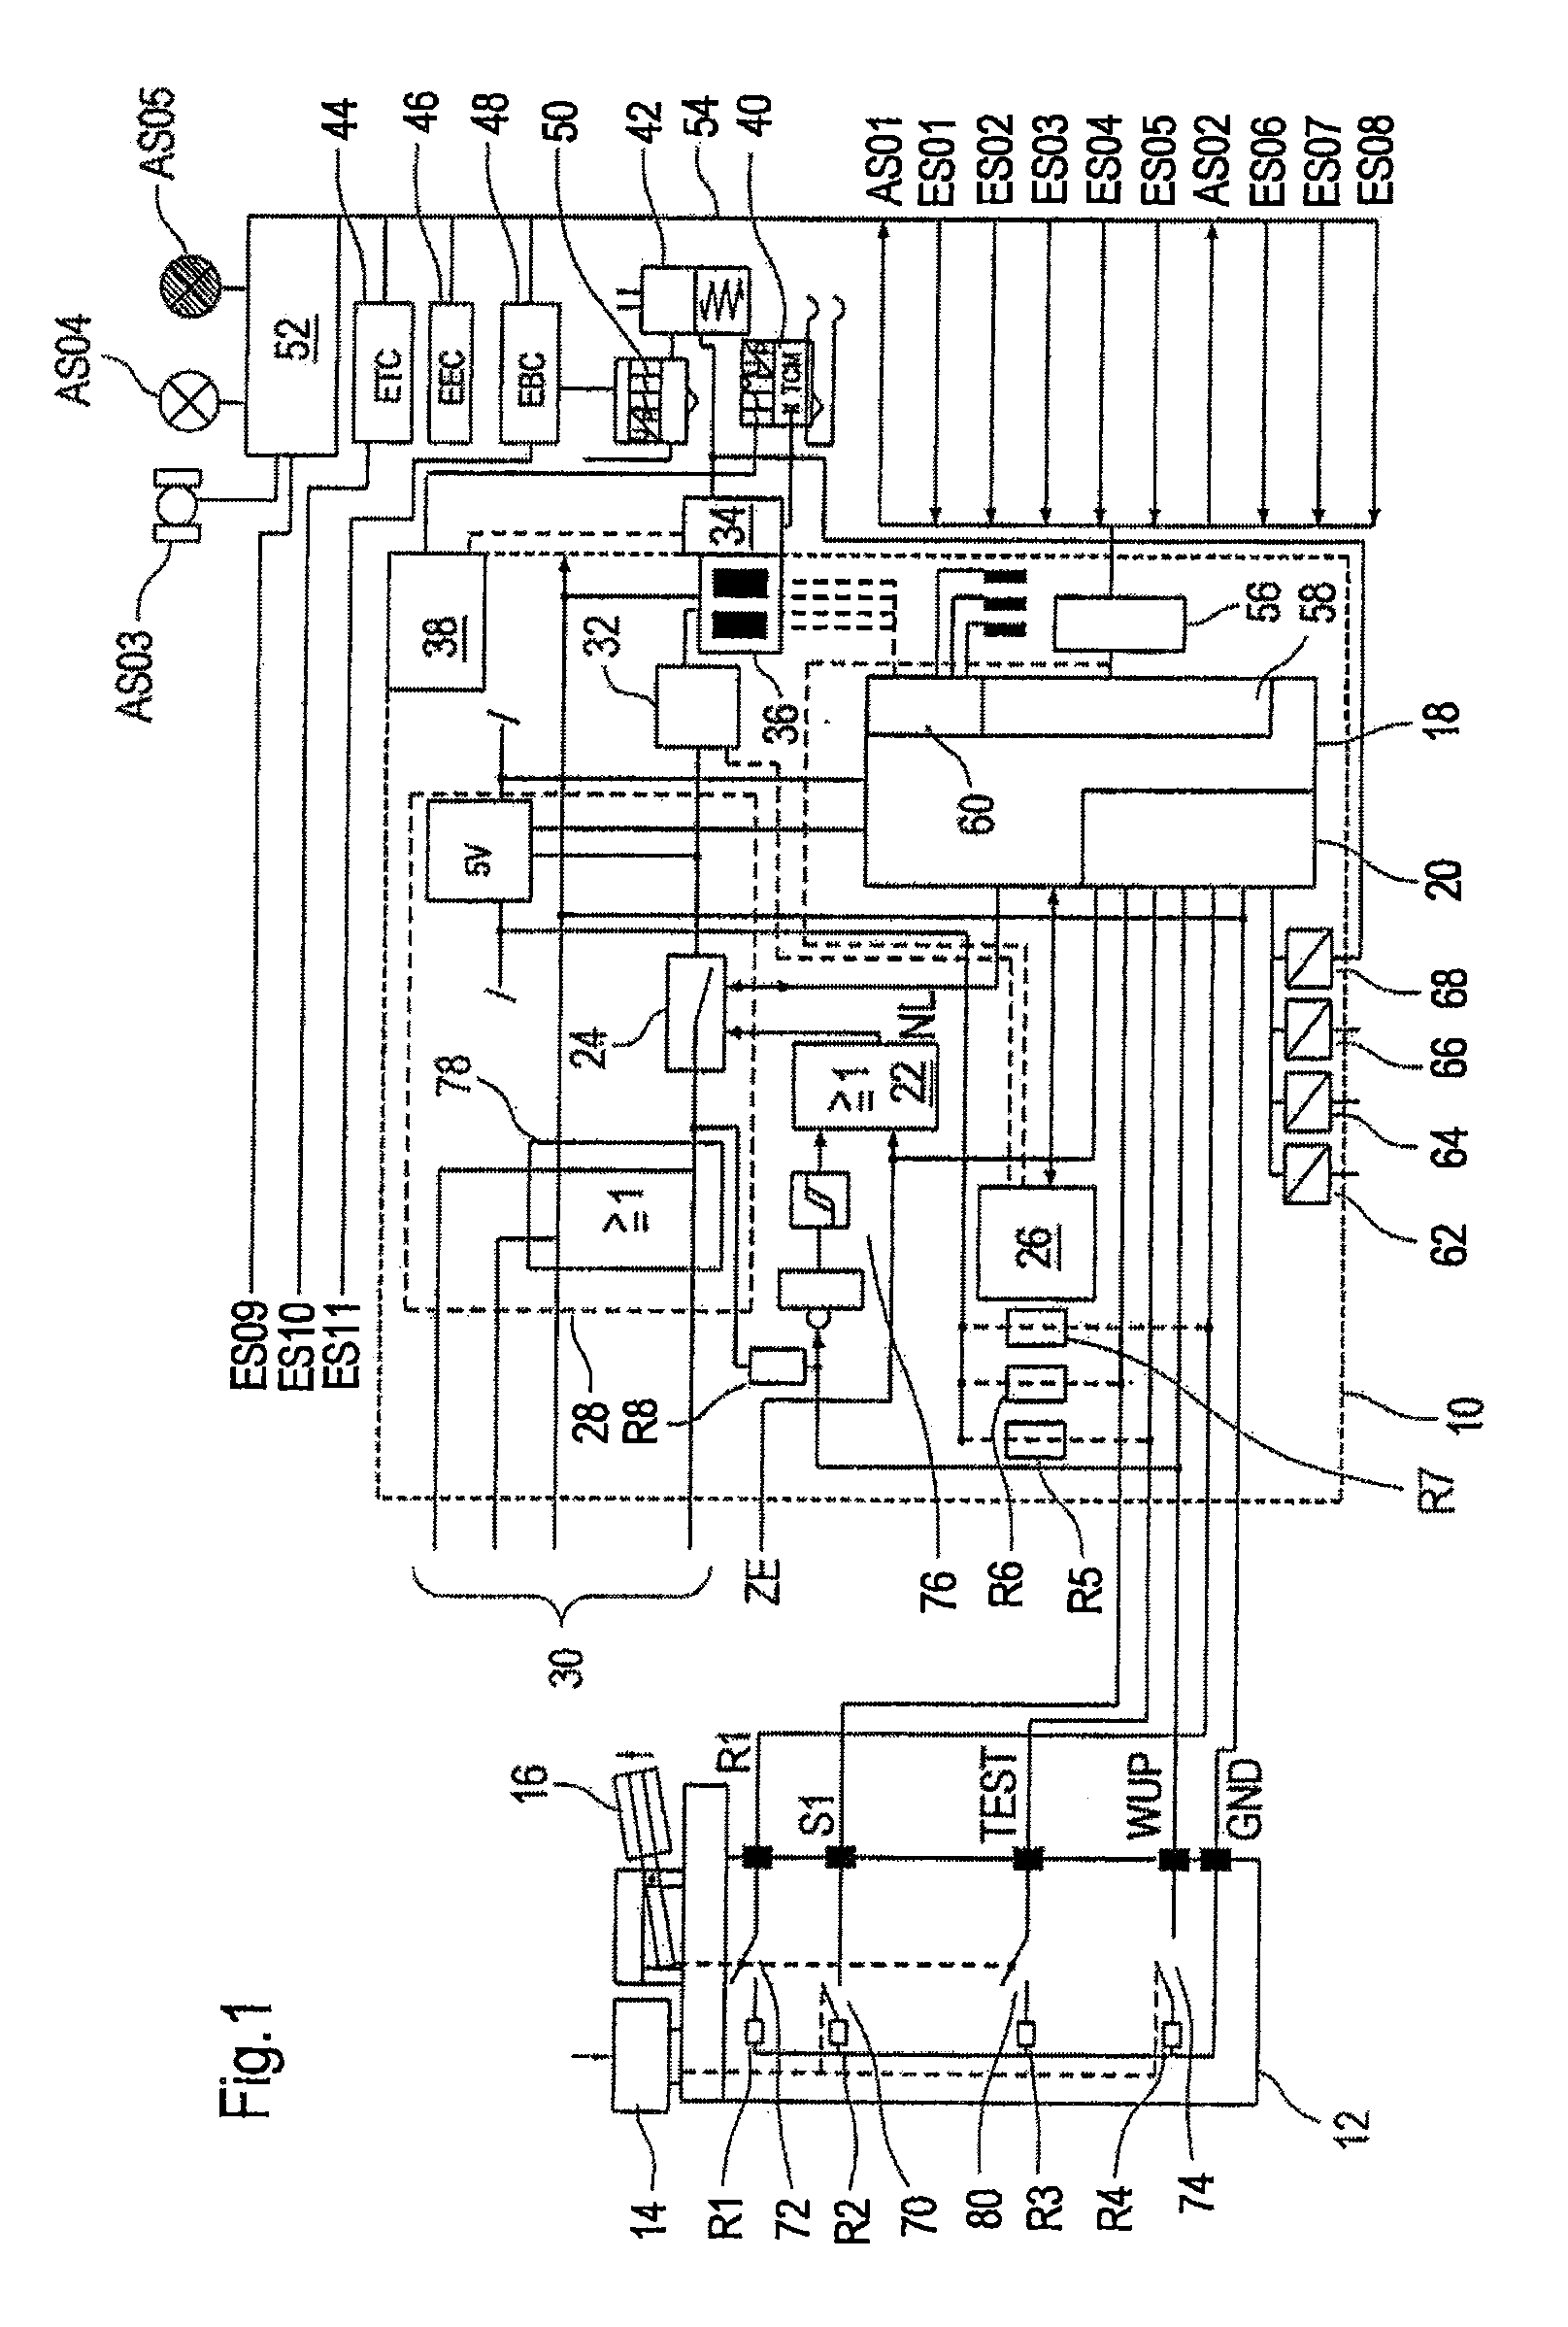 Wabco 4s 4m Wiring Diagram 26 Images Scania Abs Us07821154 20101026 D00001 Patent Us7821154 Device And Method For Controlling An Electric